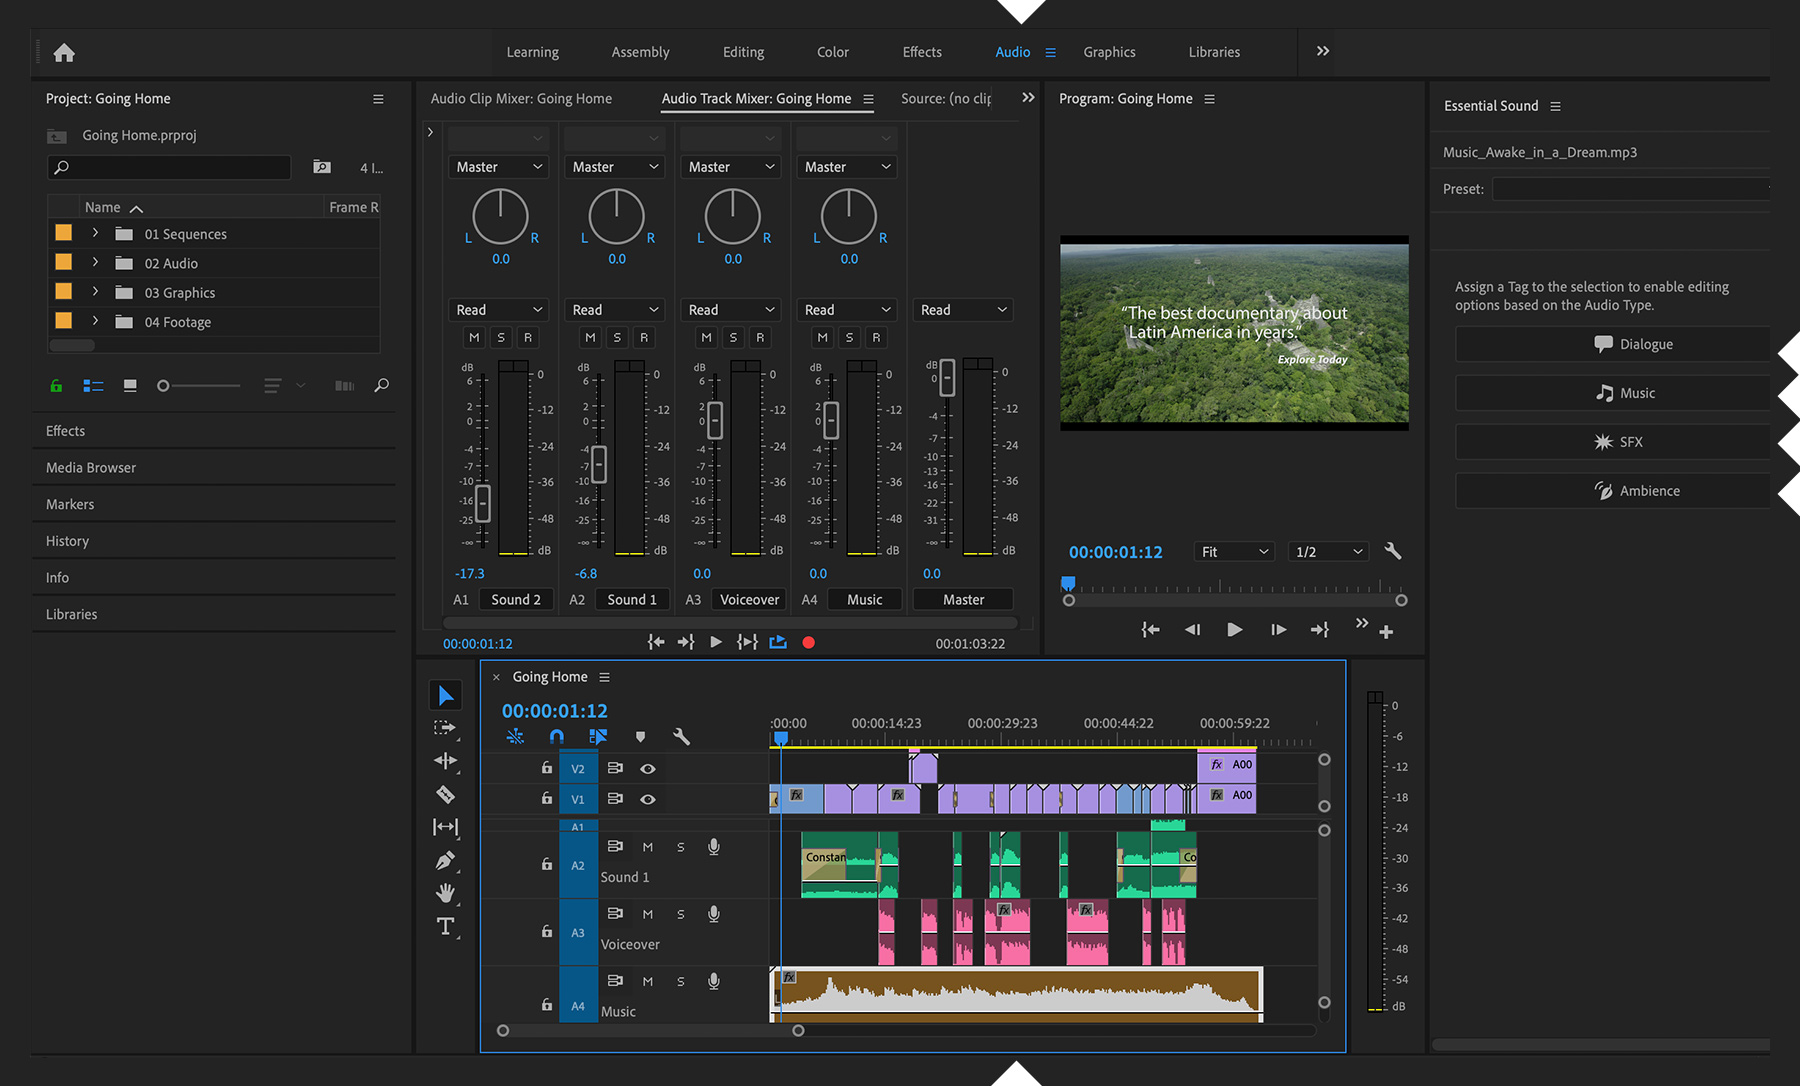 How To Create An Audio Mix Adobe Premiere Pro Tutorials